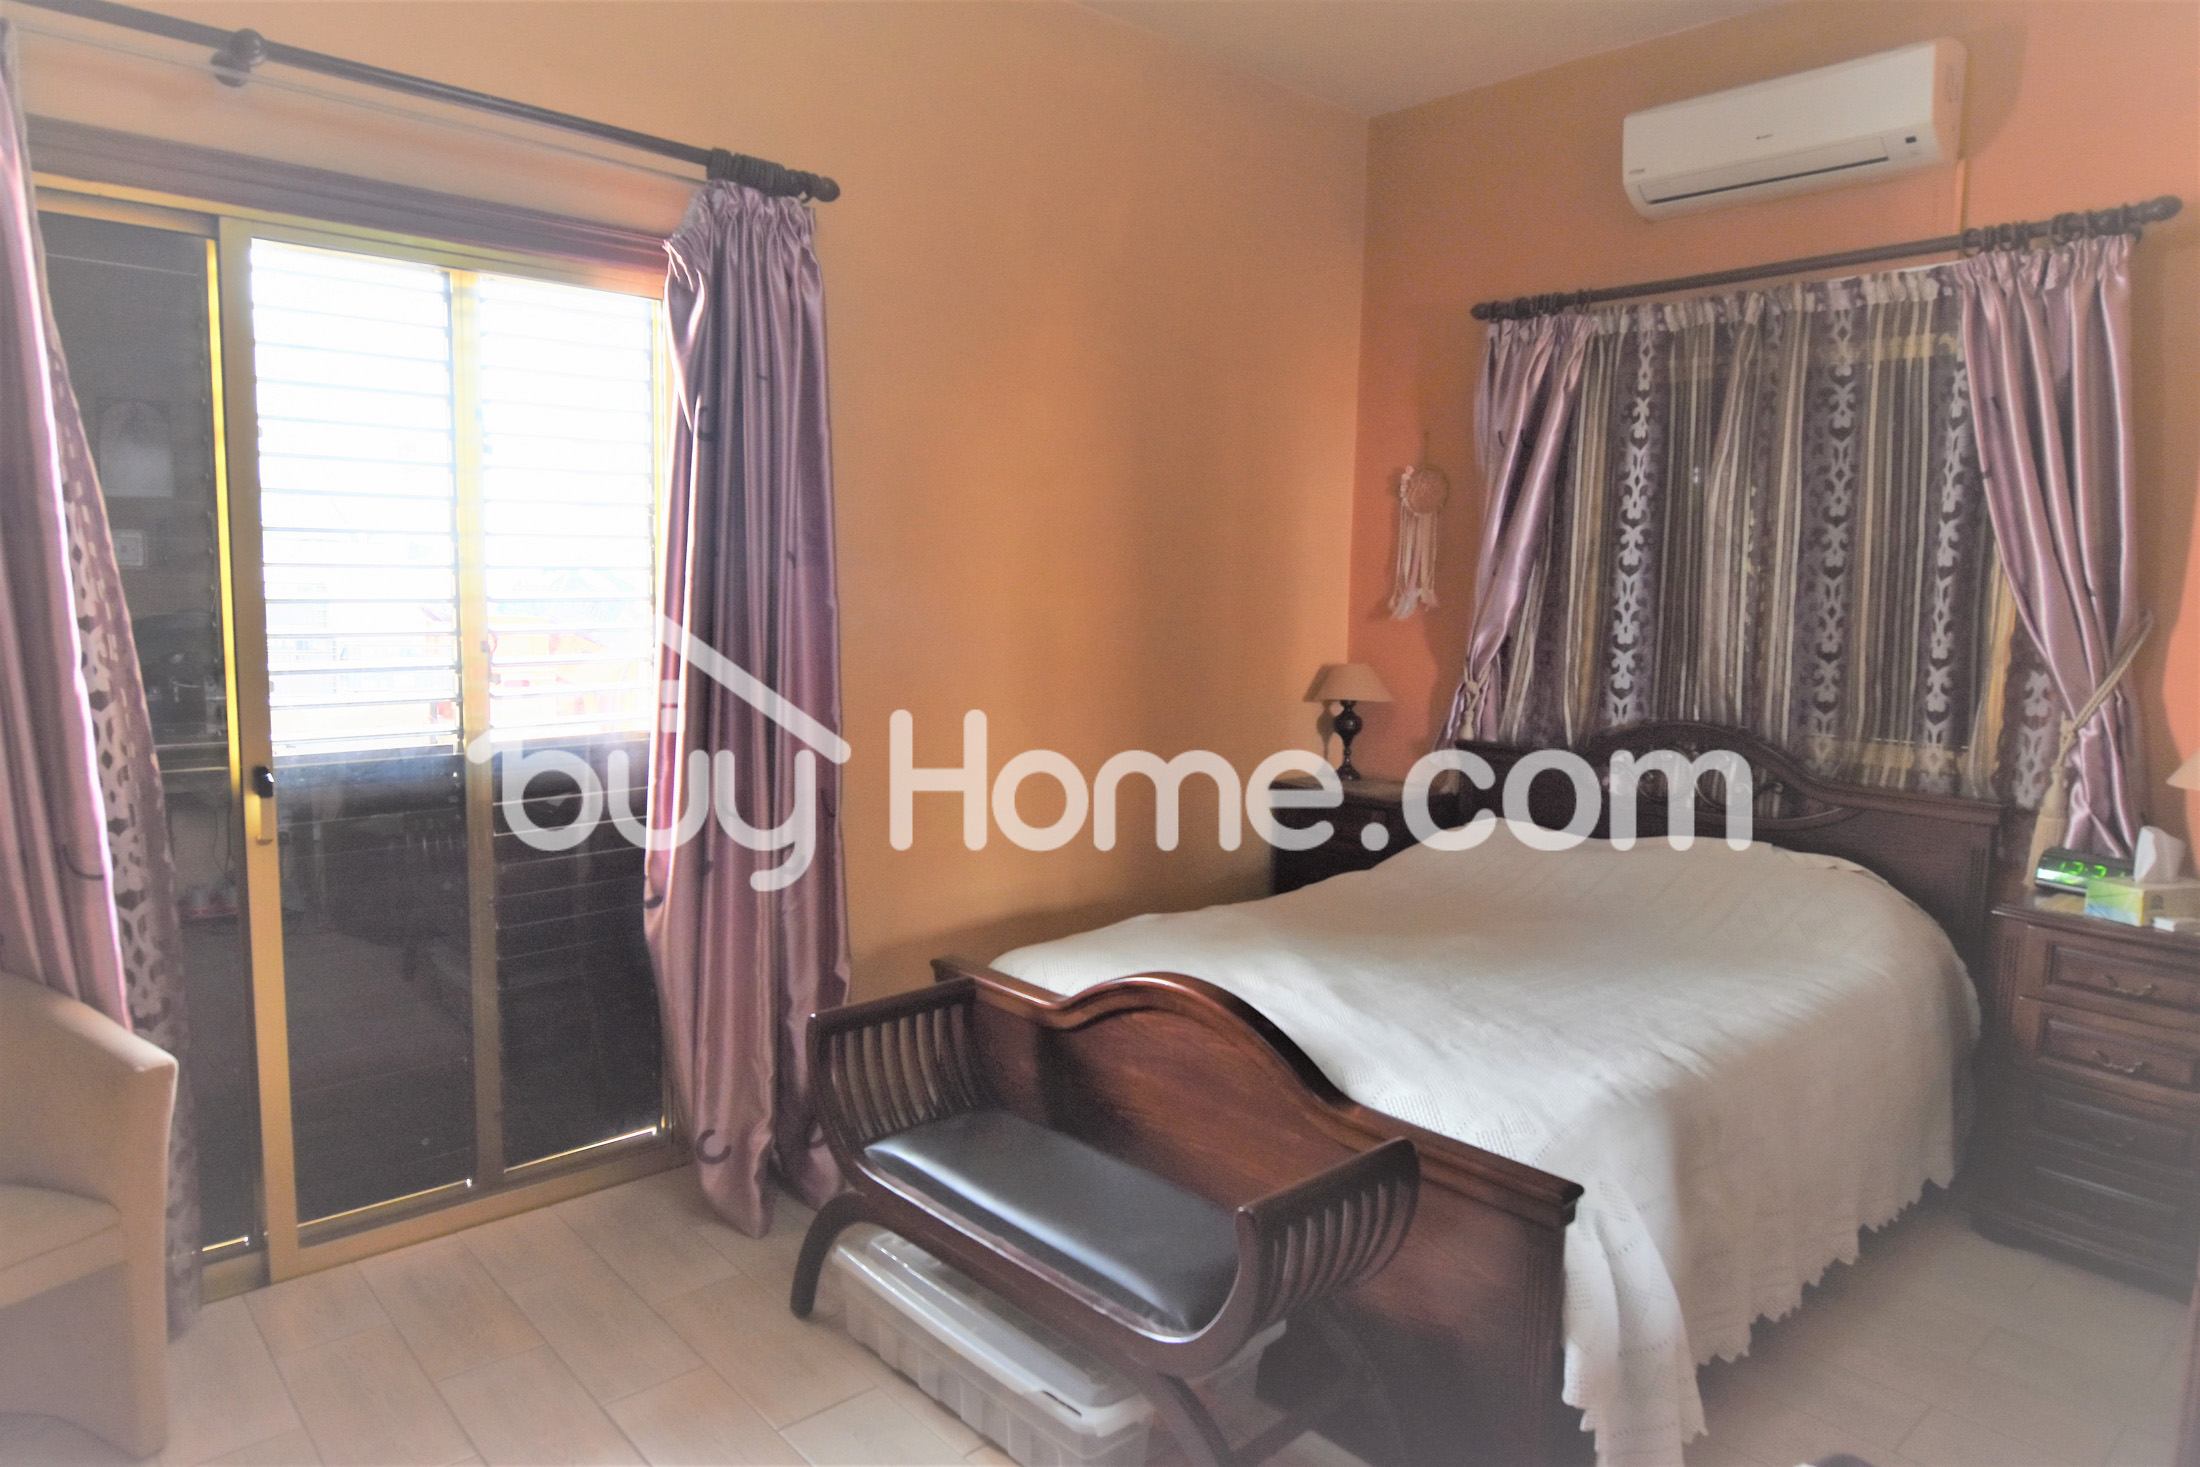 3 Bedroom Bungalow | BuyHome